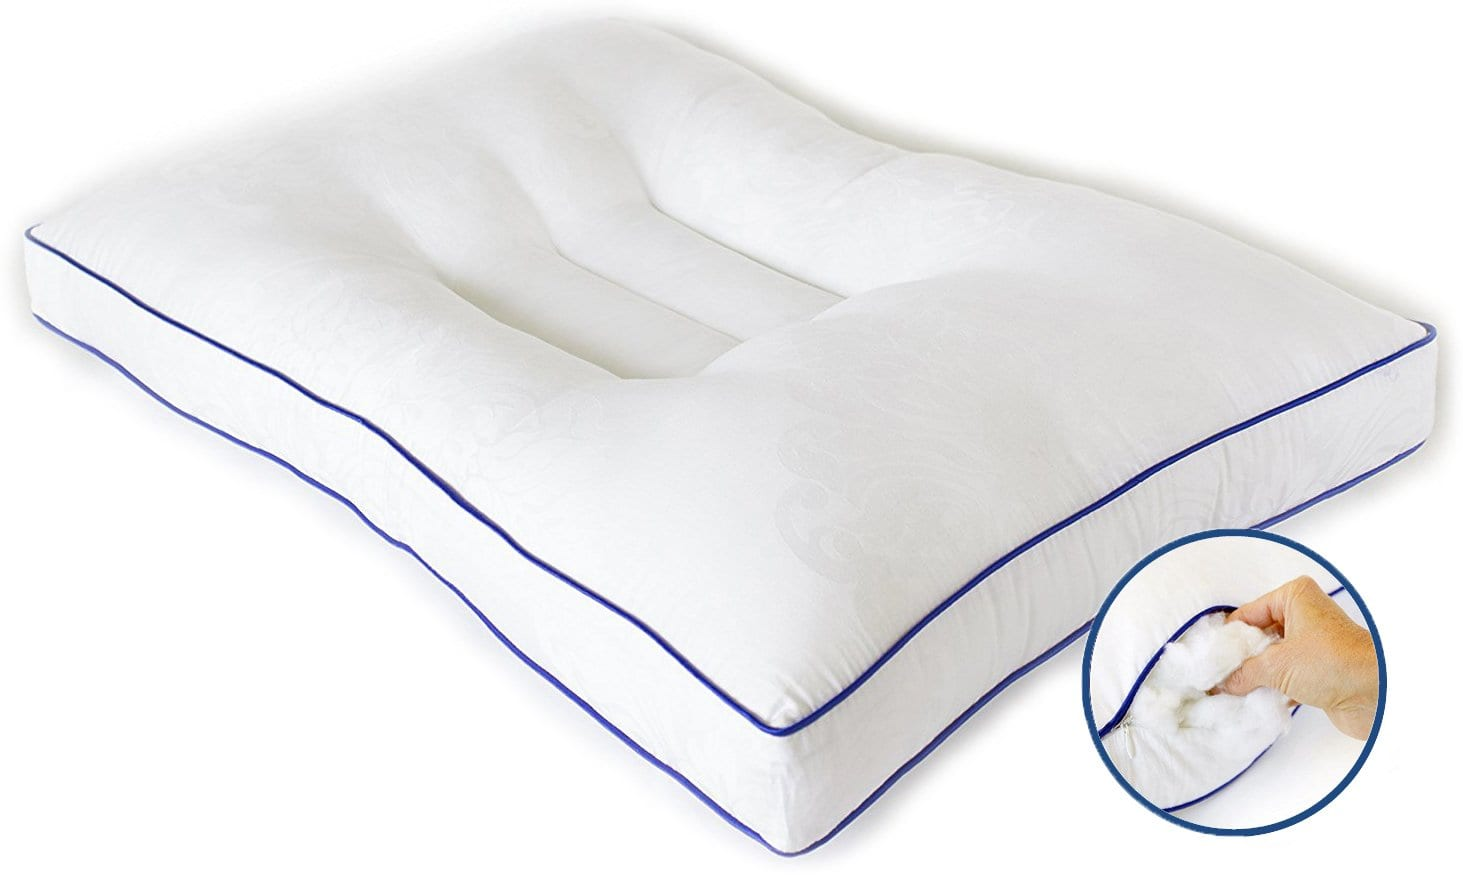 Nature's Guest Best Cervical Support Pillow Review by www.dailysleep.org